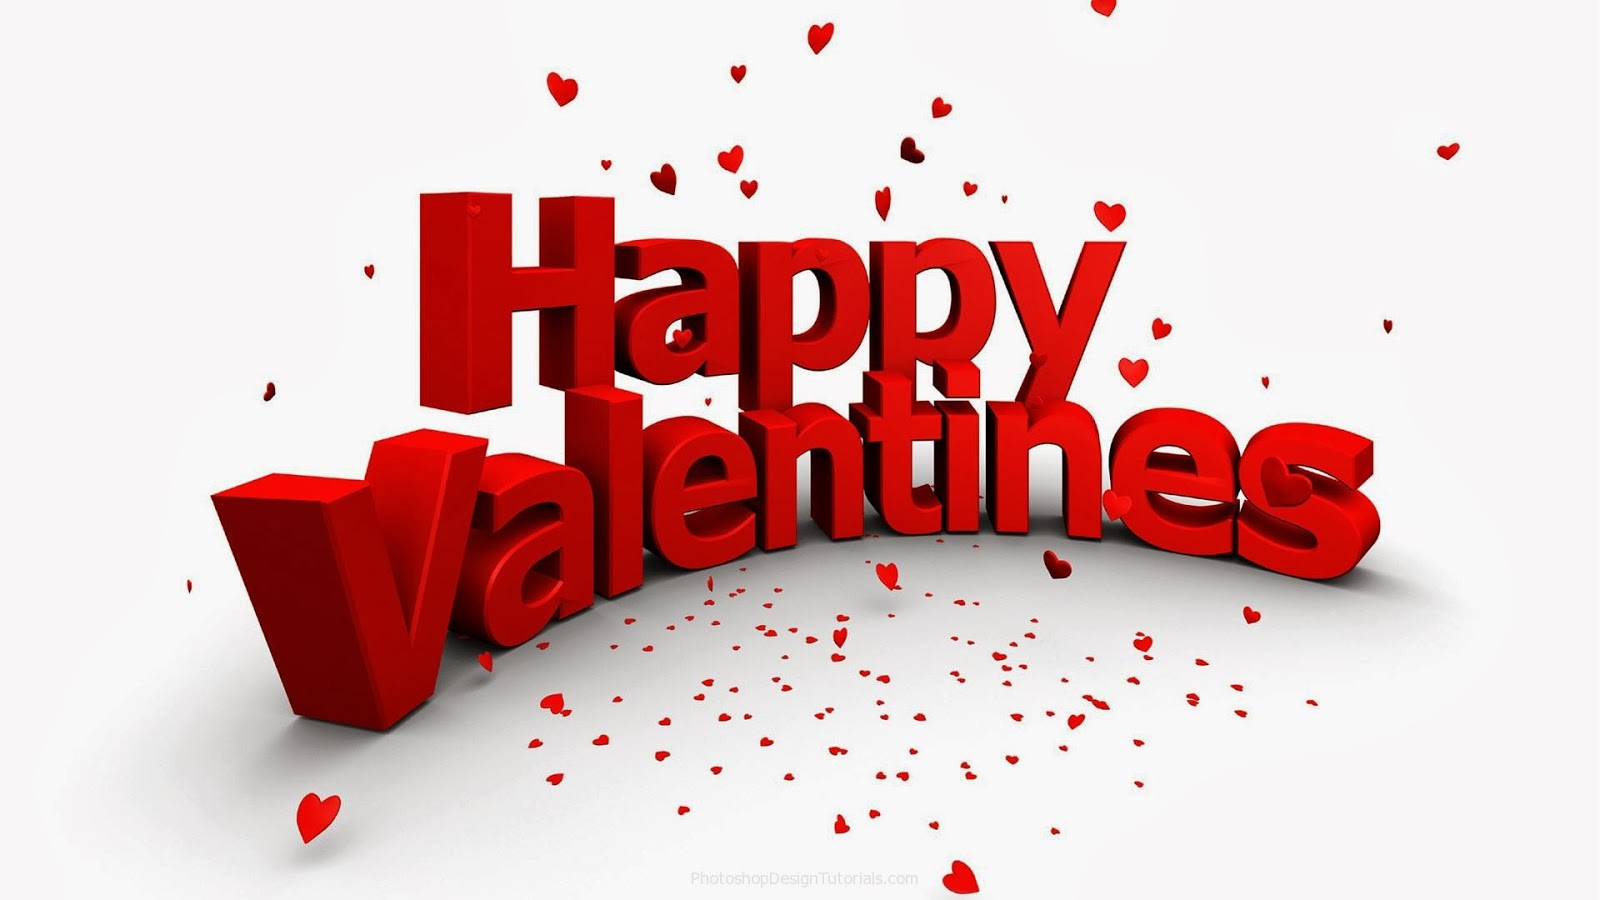 Happy Valentines Day 2016 Wallpapers